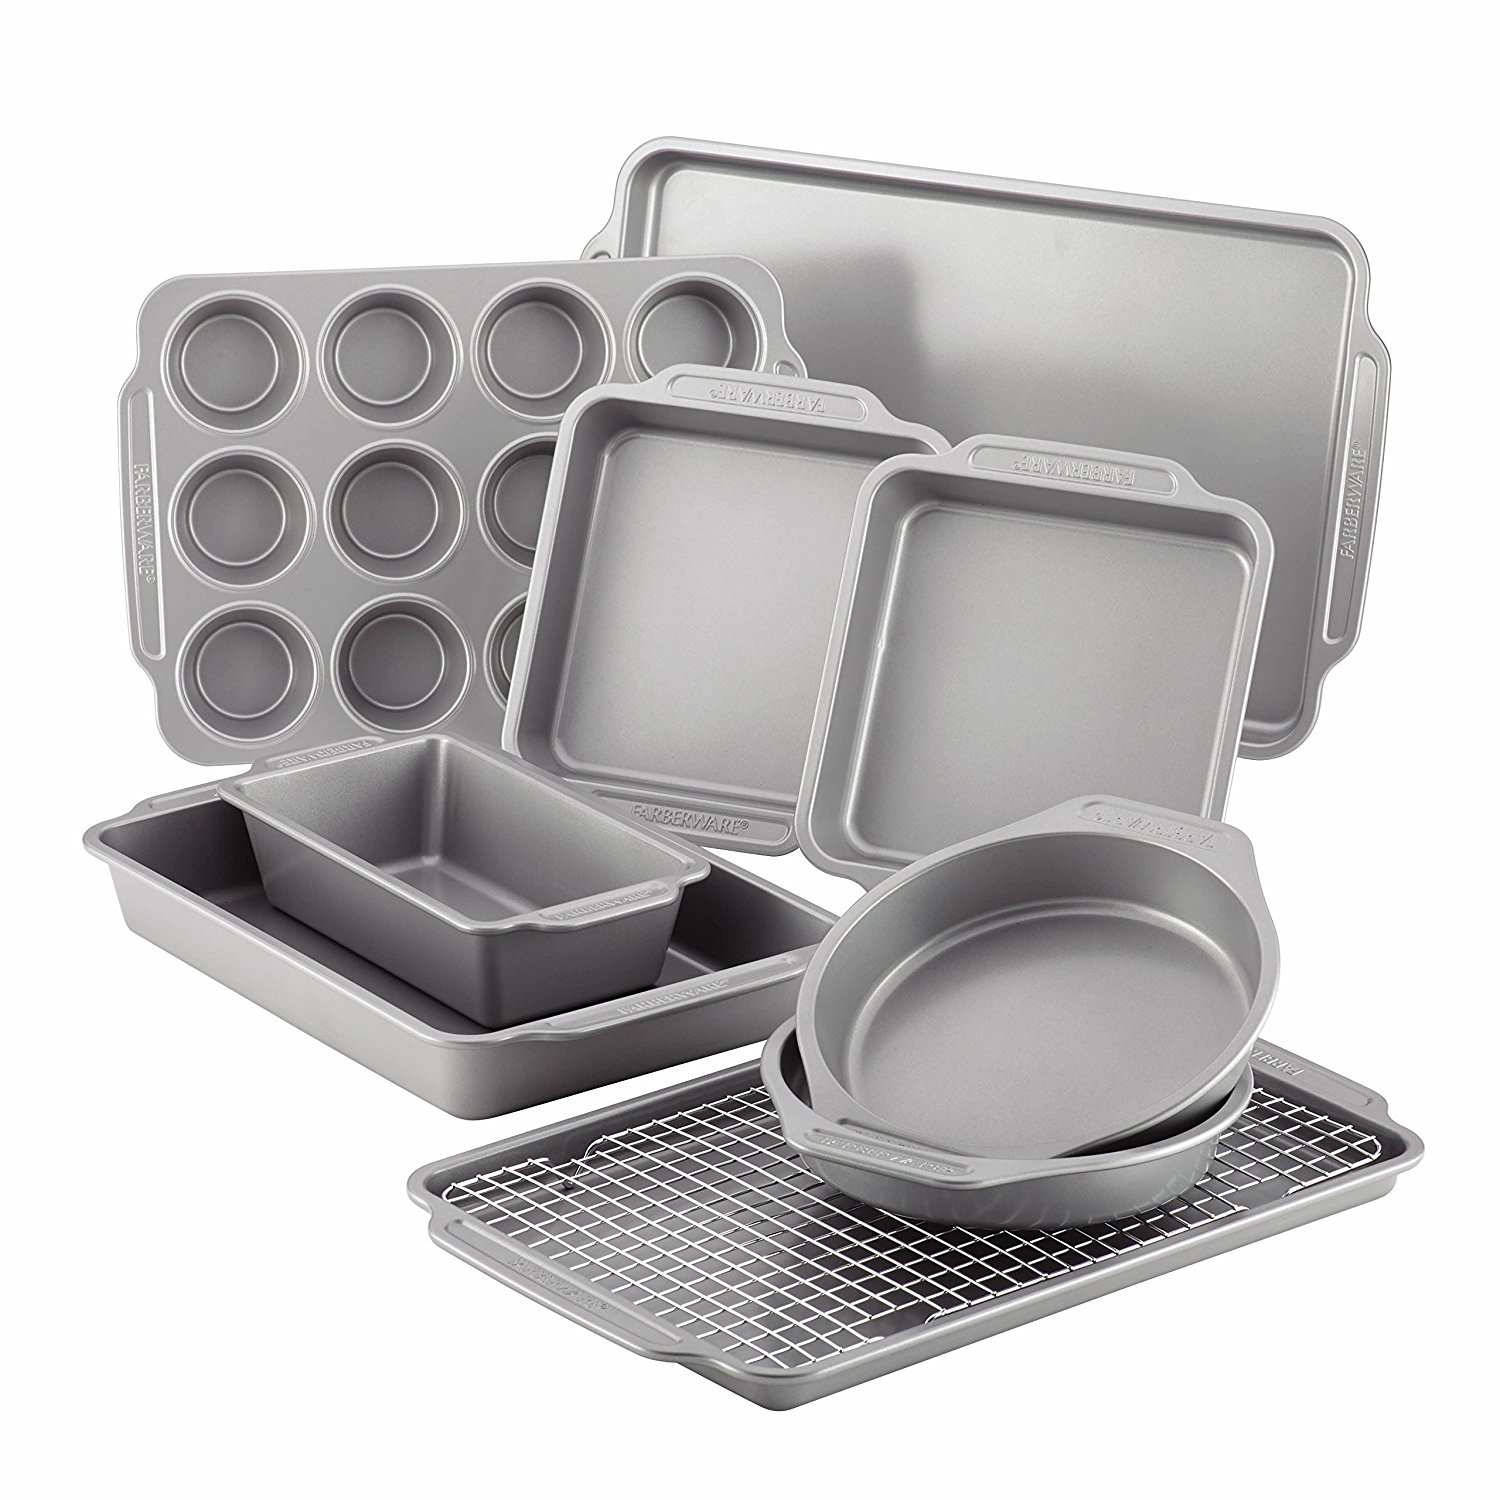 Farberware Nonstick Bakeware 10-Piece Set with Cooling Rack, Gray 46650